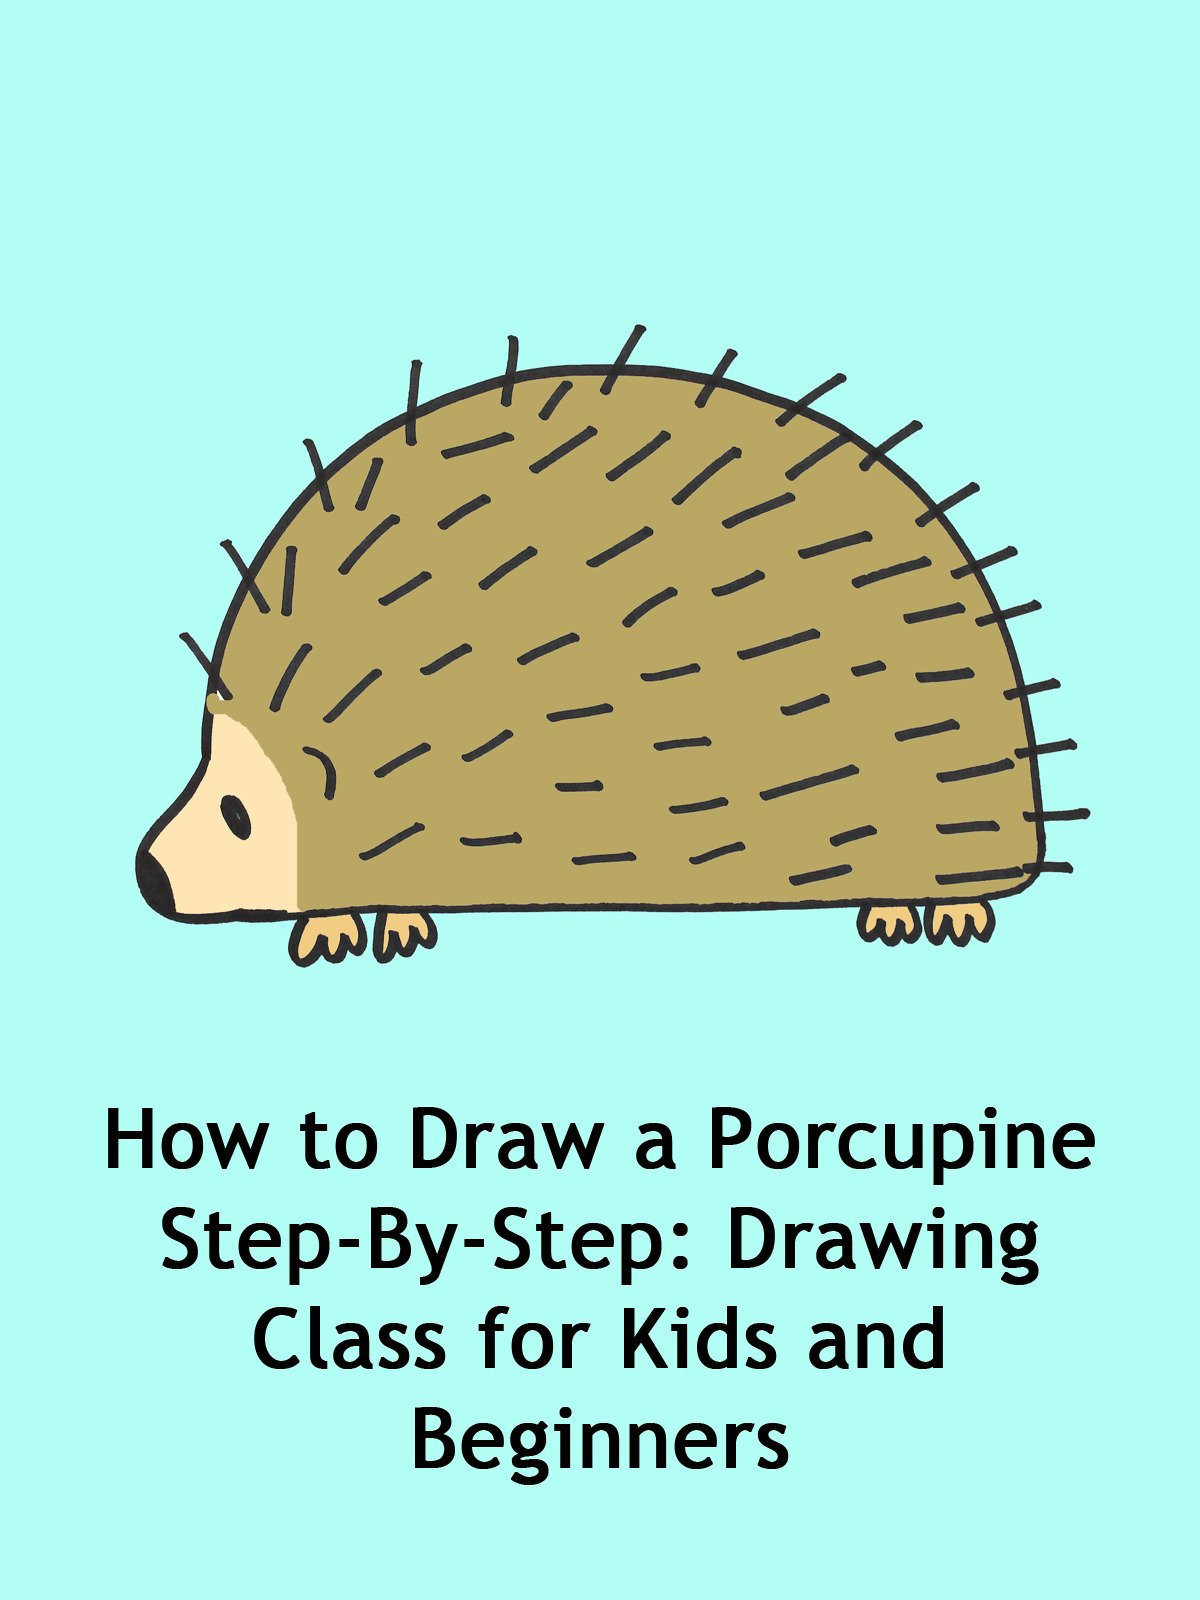 amazoncom how to draw a porcupine step by step drawing class for kids and beginners em winn